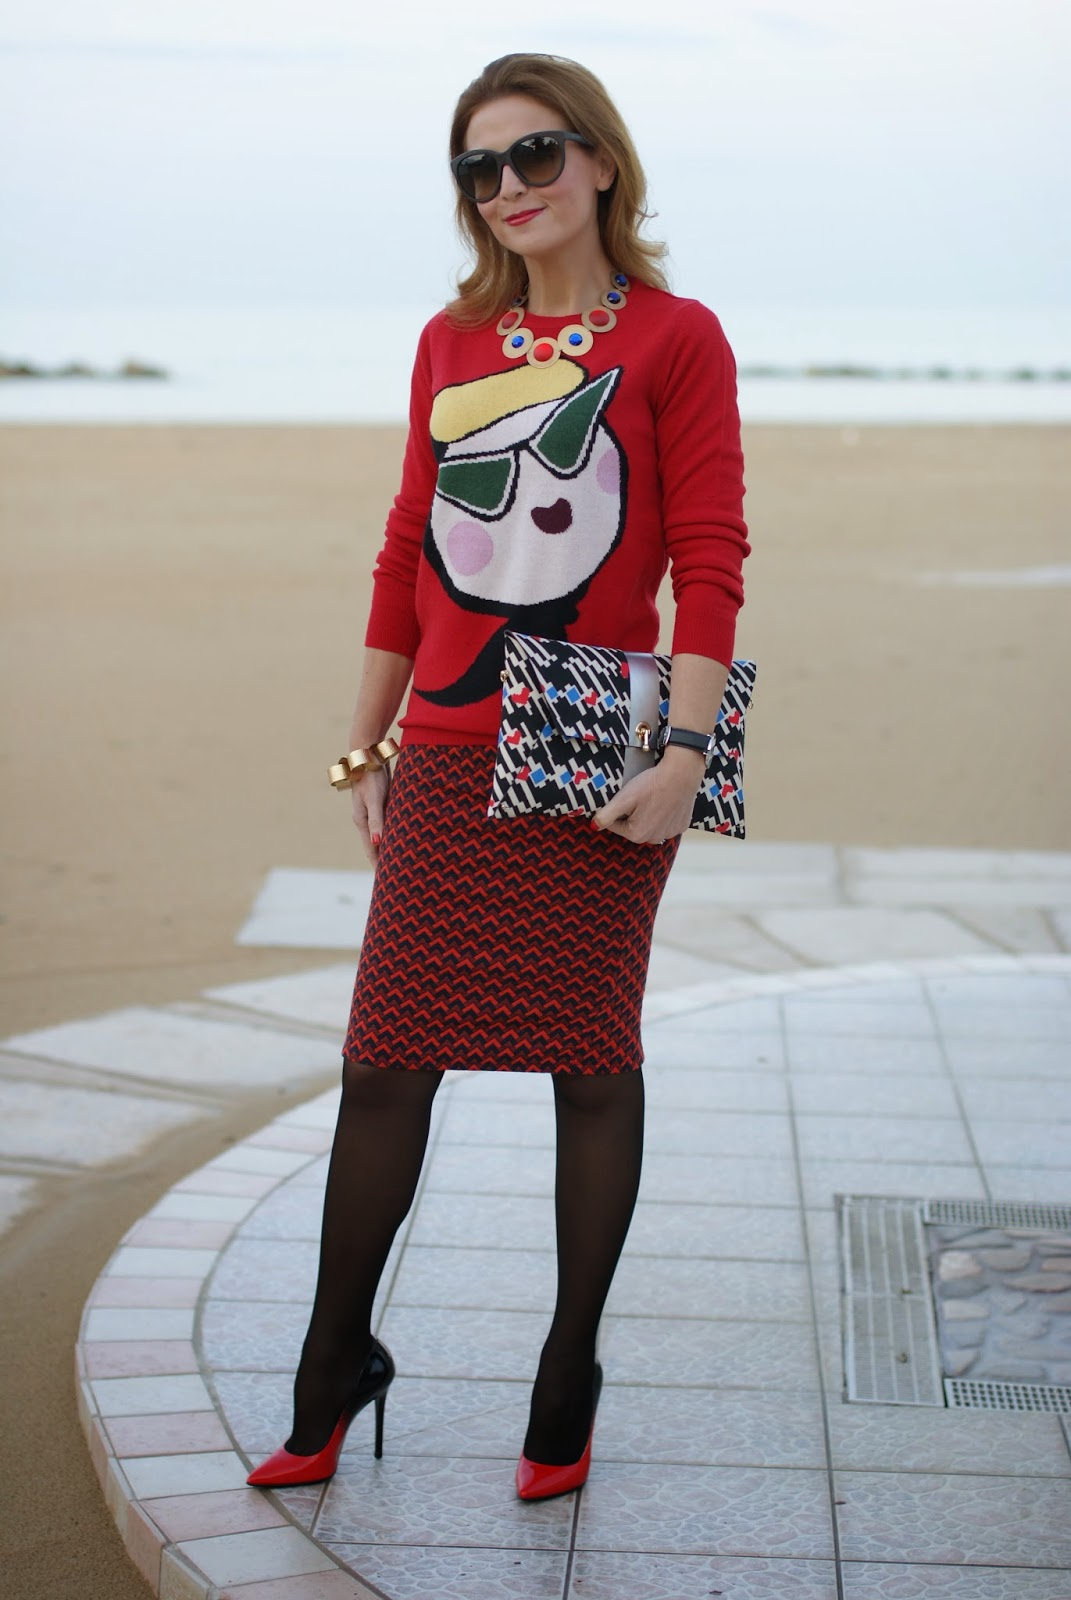 Love Moschino sweater, printed pencil skirt, heels worn with sheer stockings, Fashion and Cookies, fashion blogger